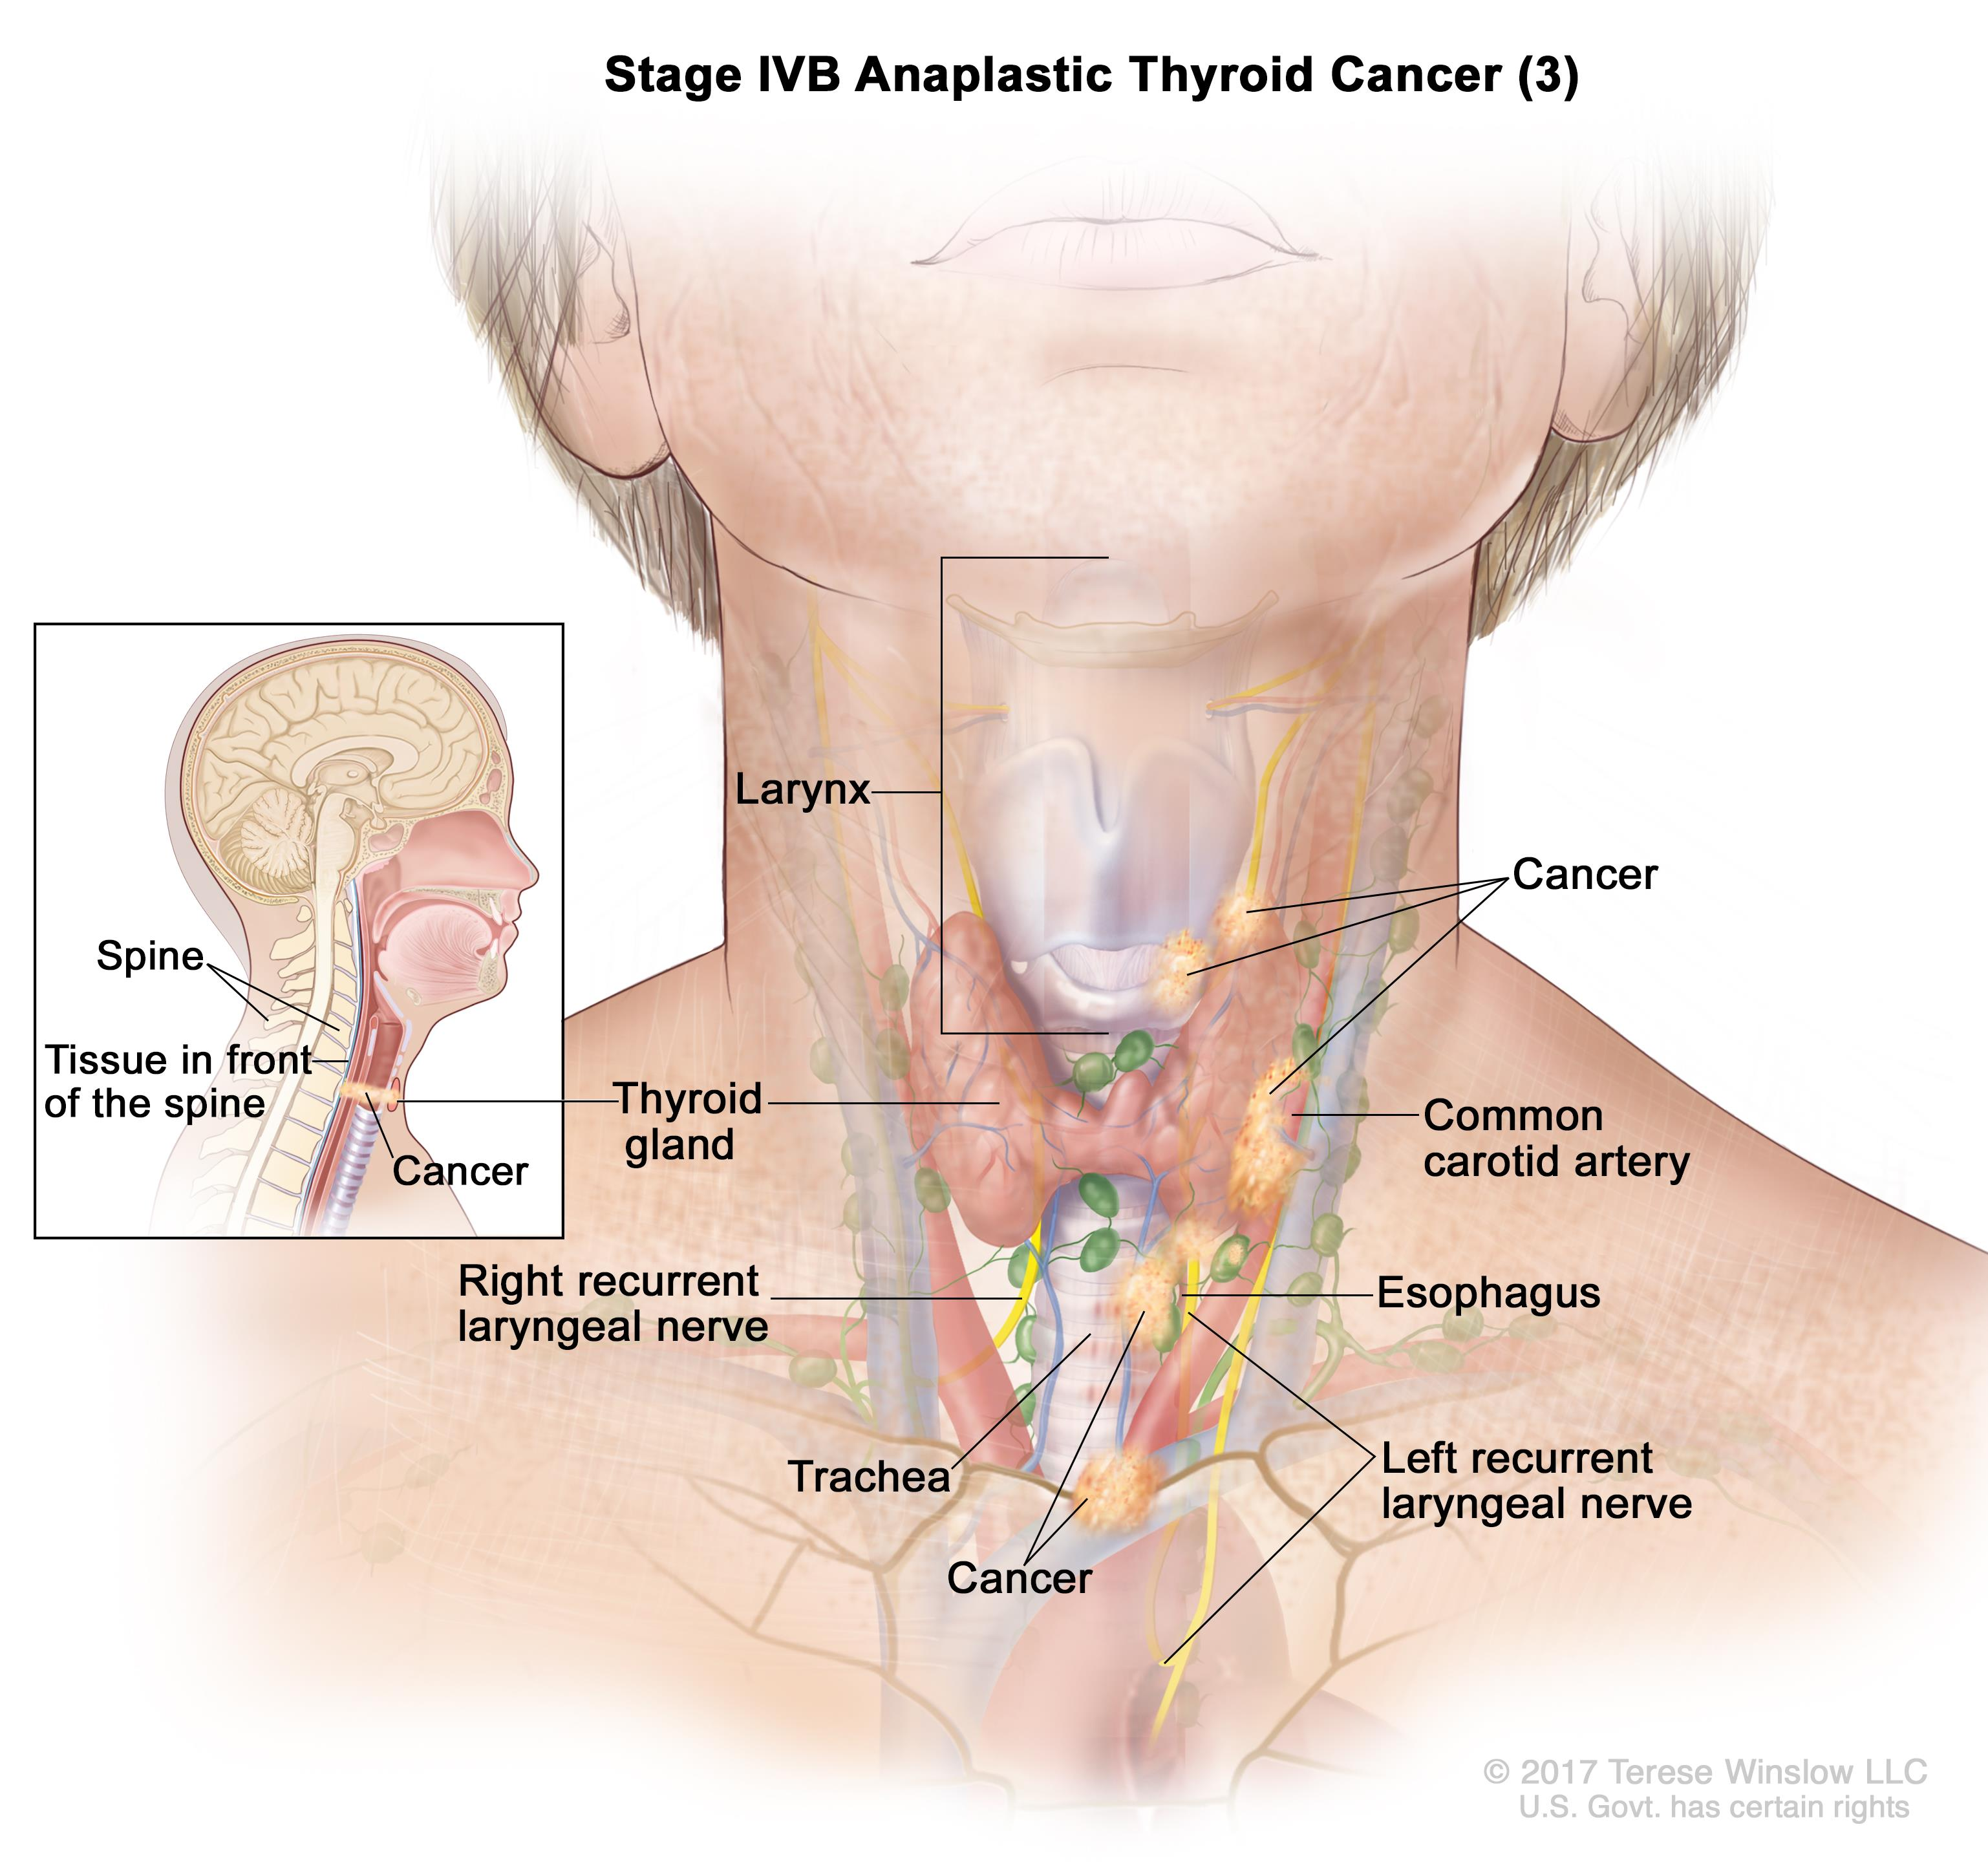 thyroid and larynx anatomy diagram intex home theatre wiring cancer treatment (pdq®)—patient version - national institute